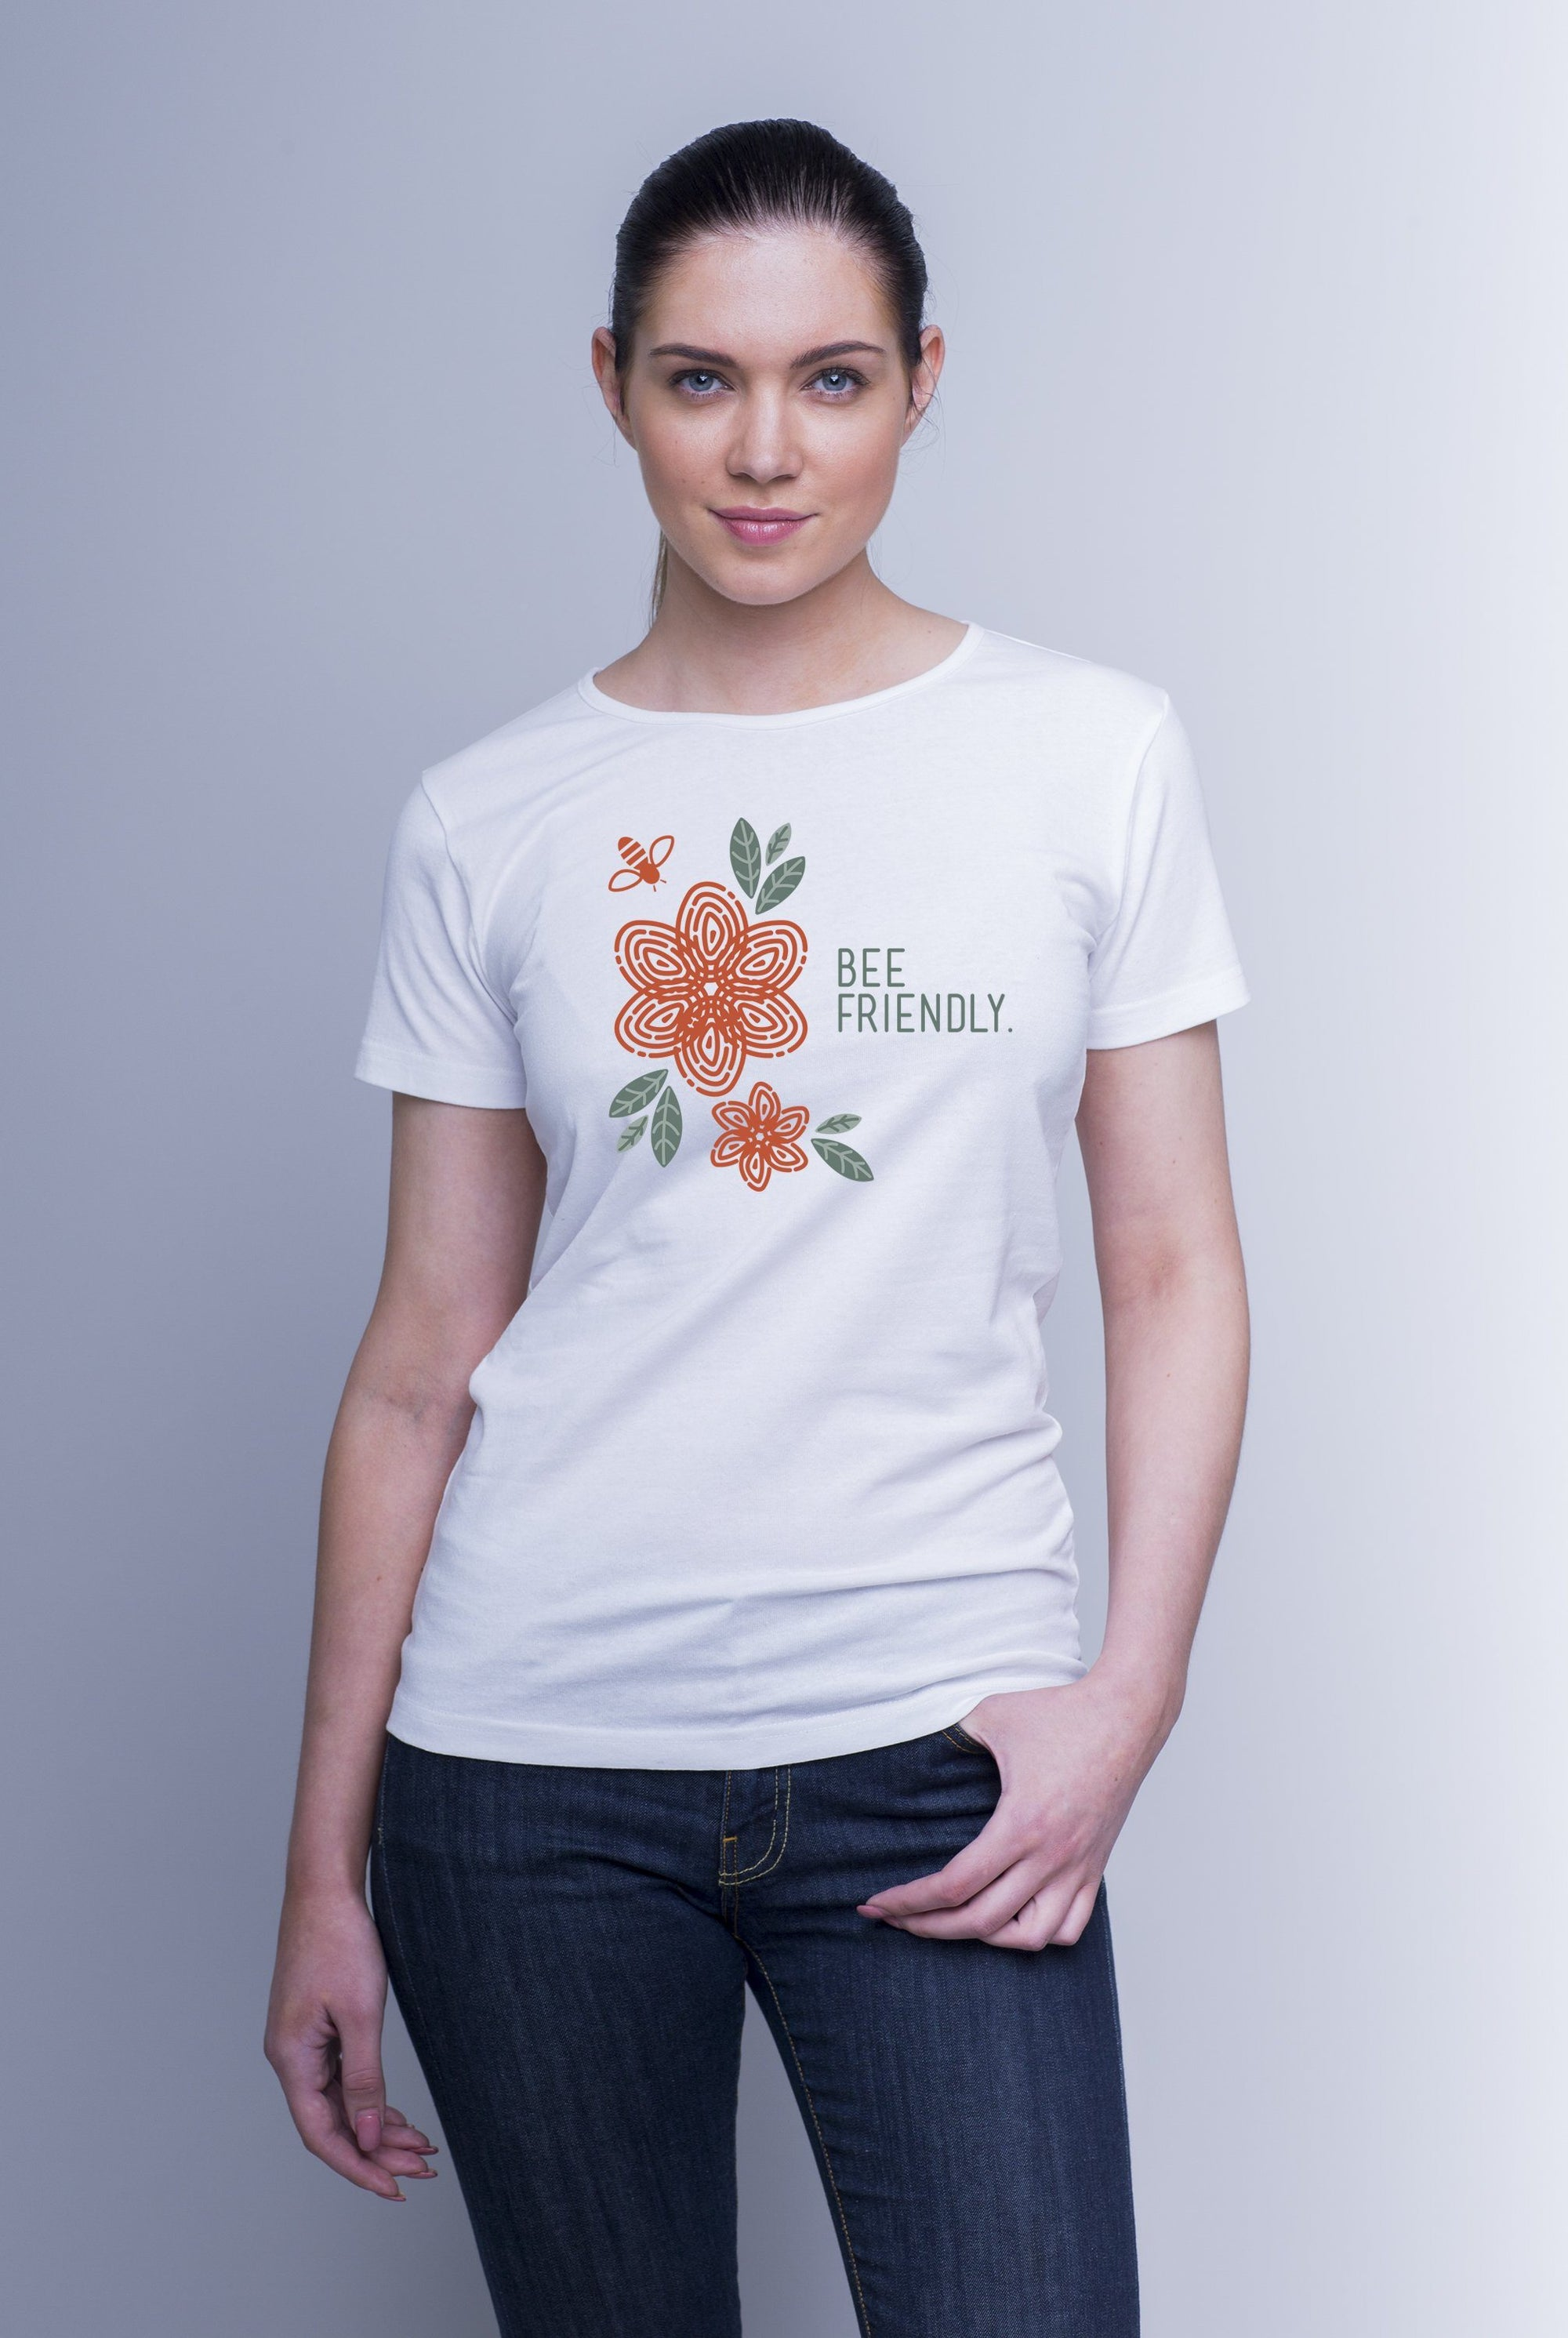 Weekendbee - W's Bee Friendly - Charity T-Shirt - Weekendbee - sustainable sportswear